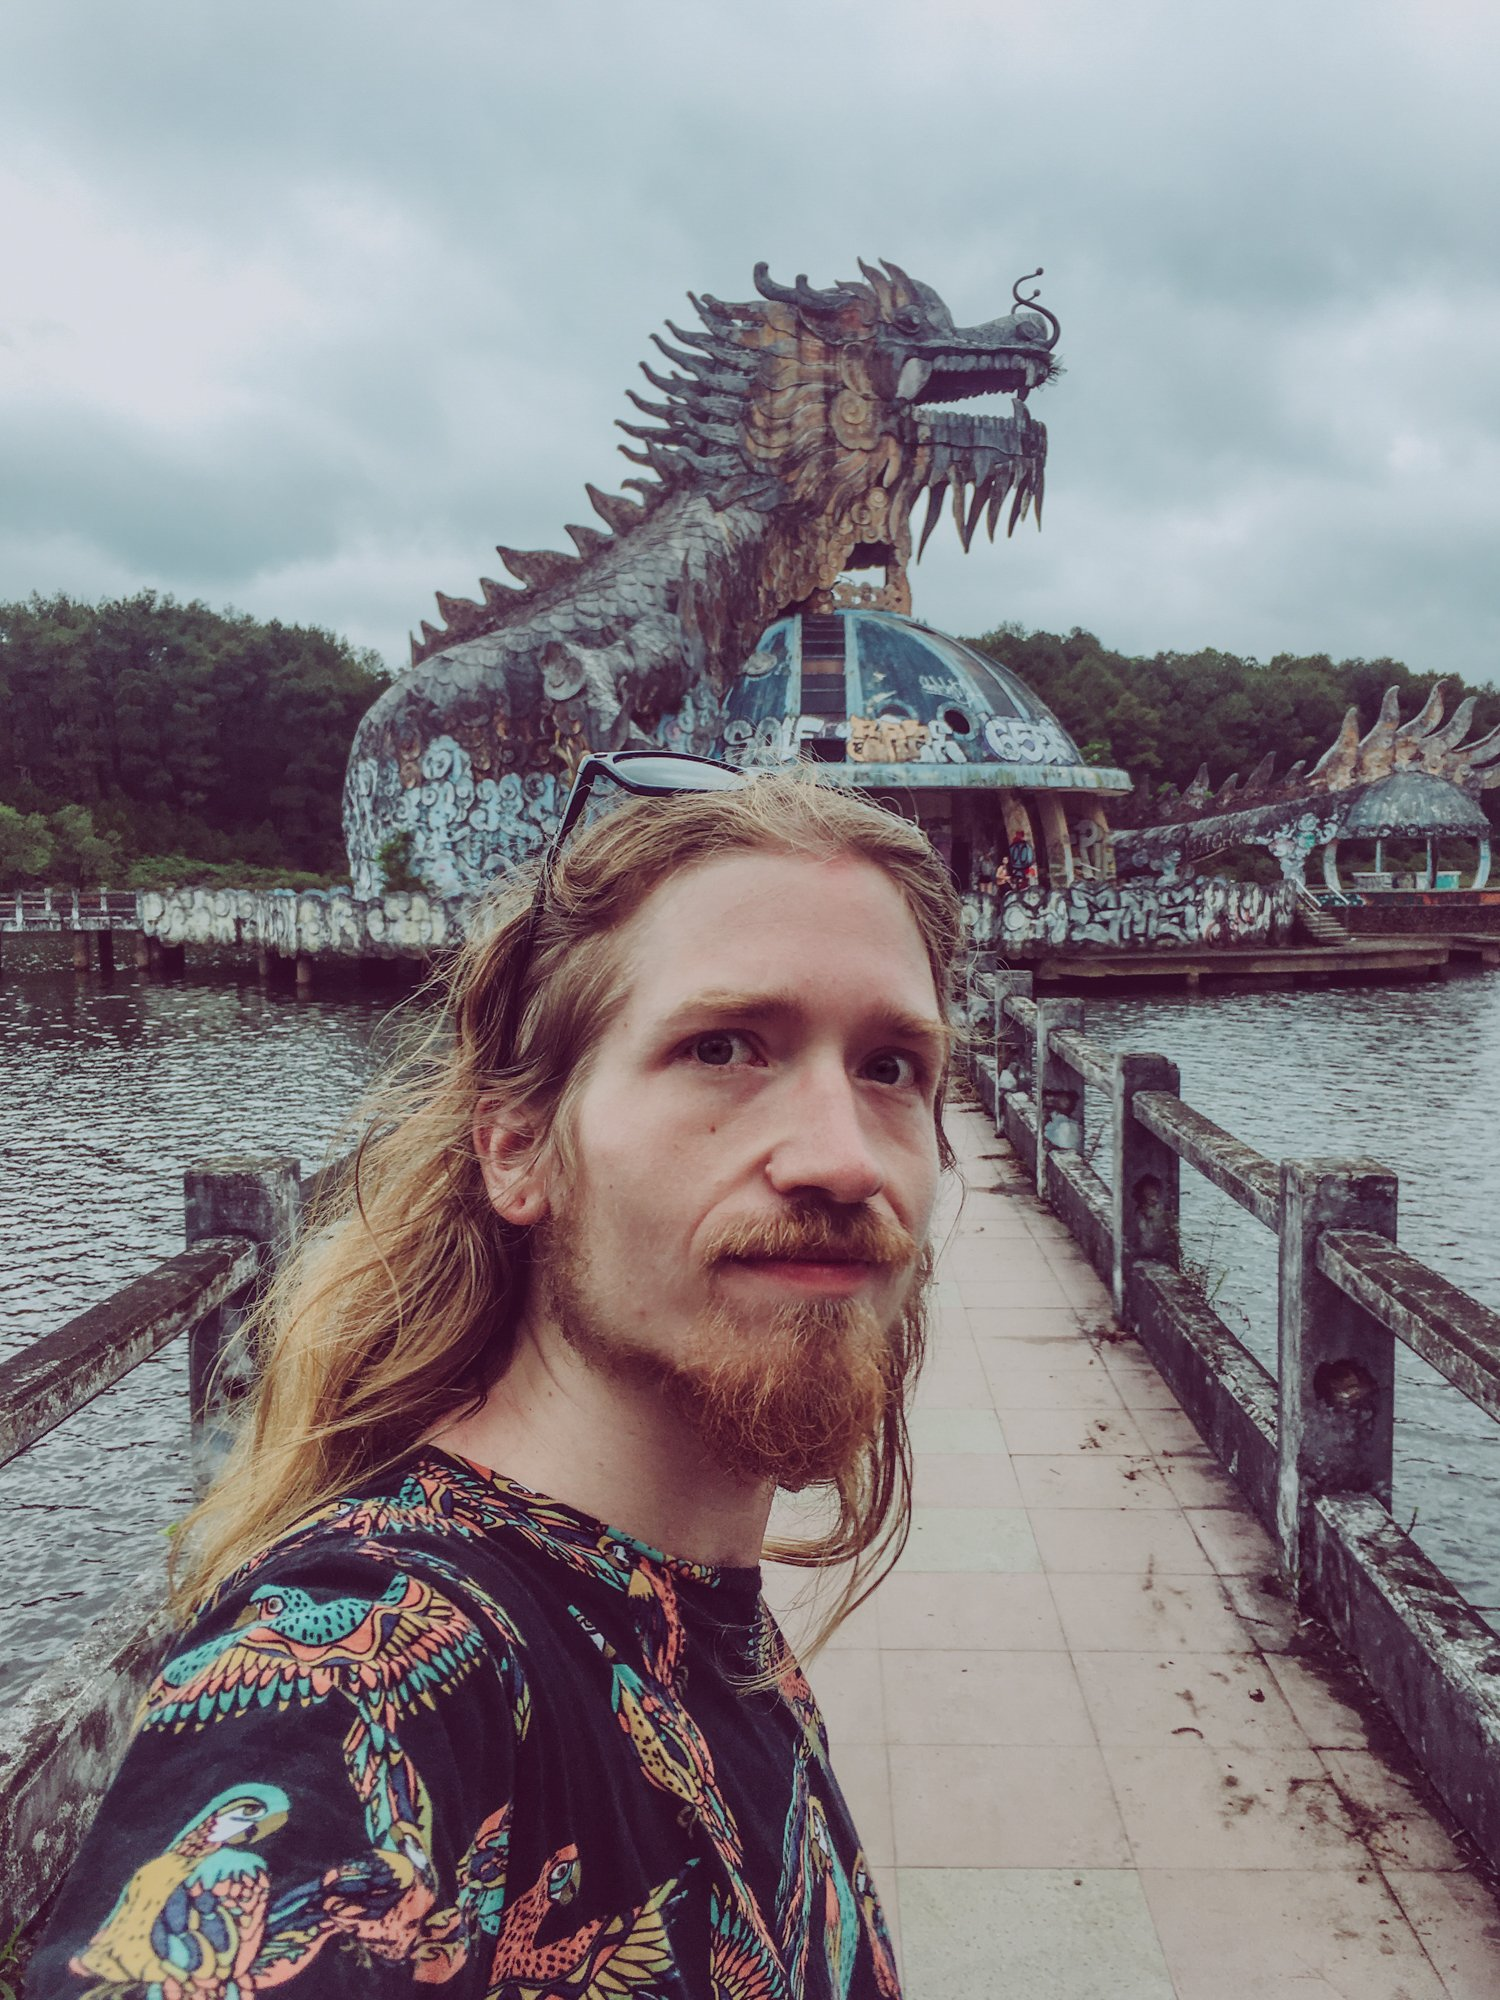 selfie with the dragon at the abandoned waterpark hue